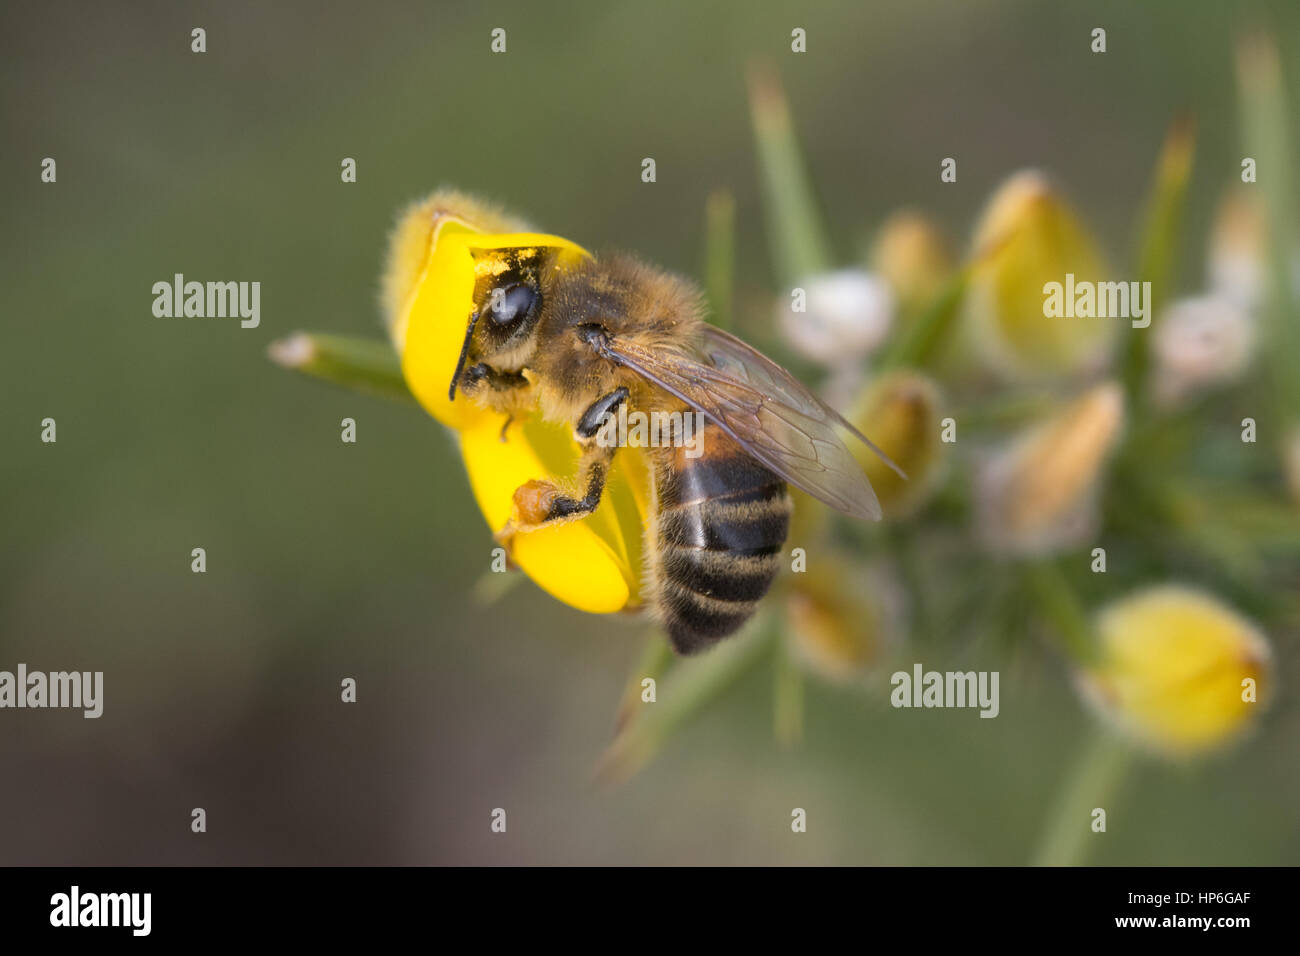 Close-up of honey bee on gorse flower - Stock Image